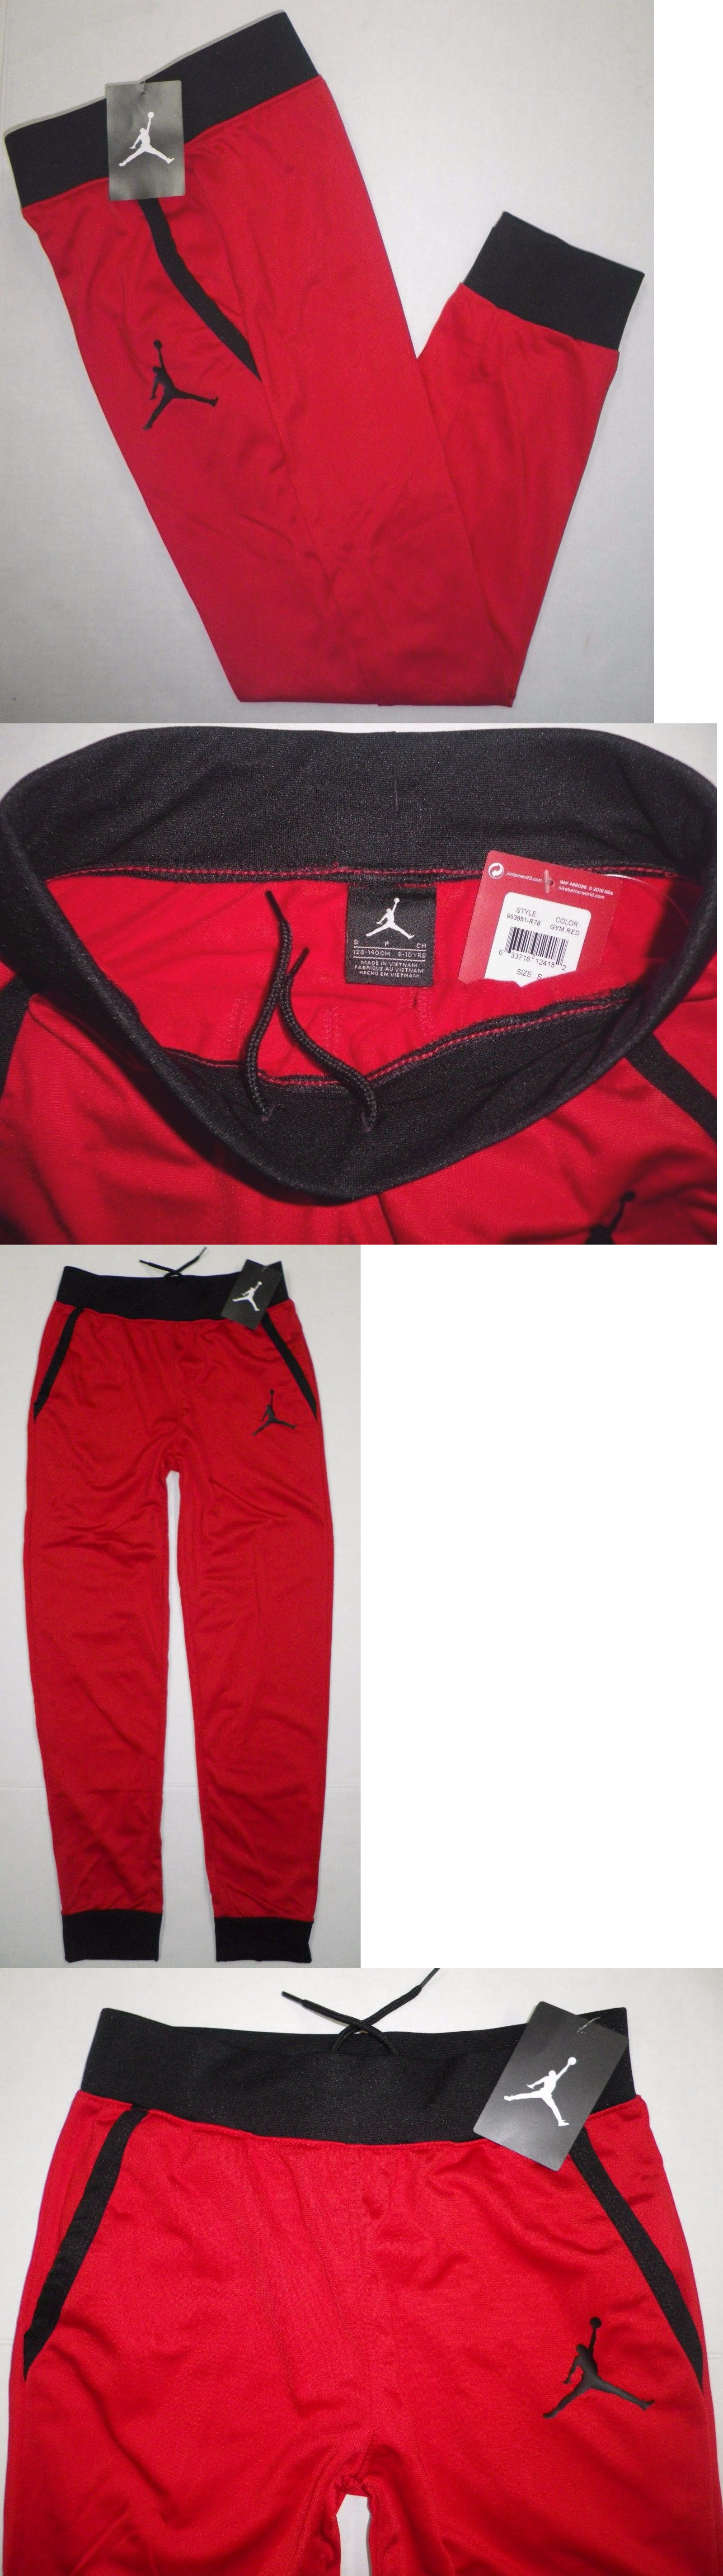 96e6275c7a1f56 Pants 51920  Nike Air Jordan Boys Jumpman Fleece Lined Jogger Sweat Pants  Red Blk Youth Small -  BUY IT NOW ONLY   35.99 on eBay!